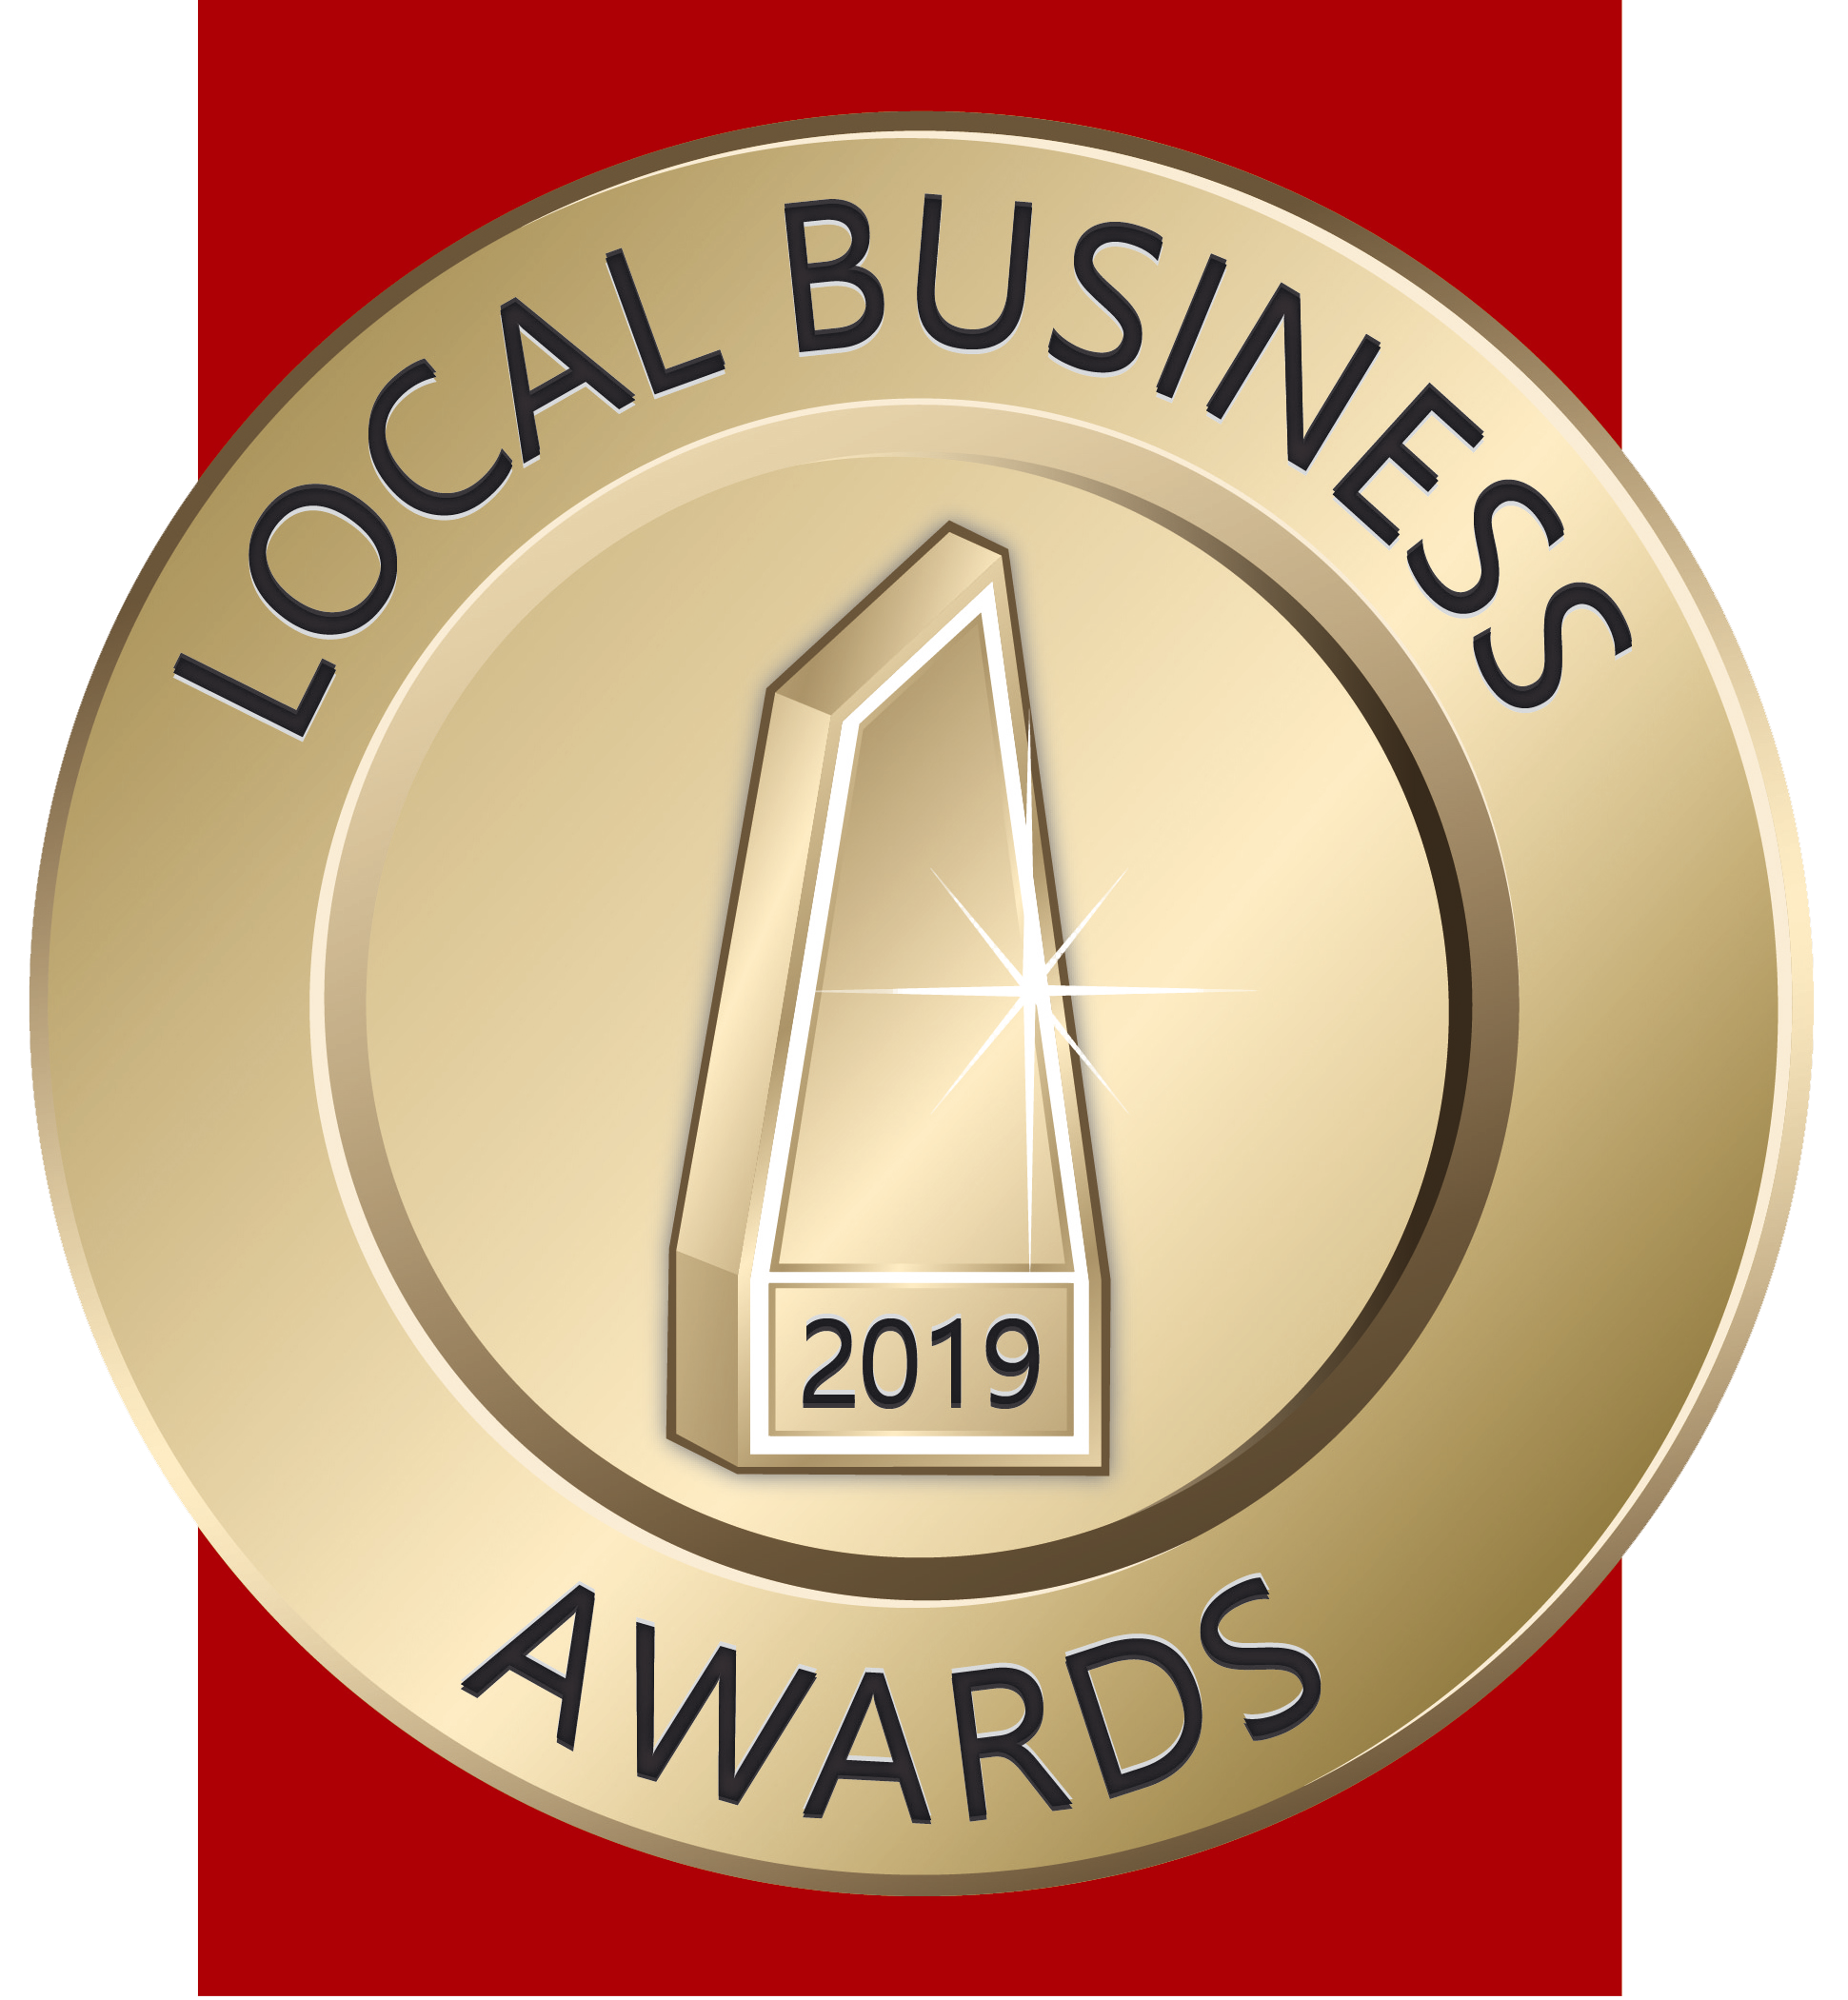 Hills-local-Business-awards-finalists-2019.png